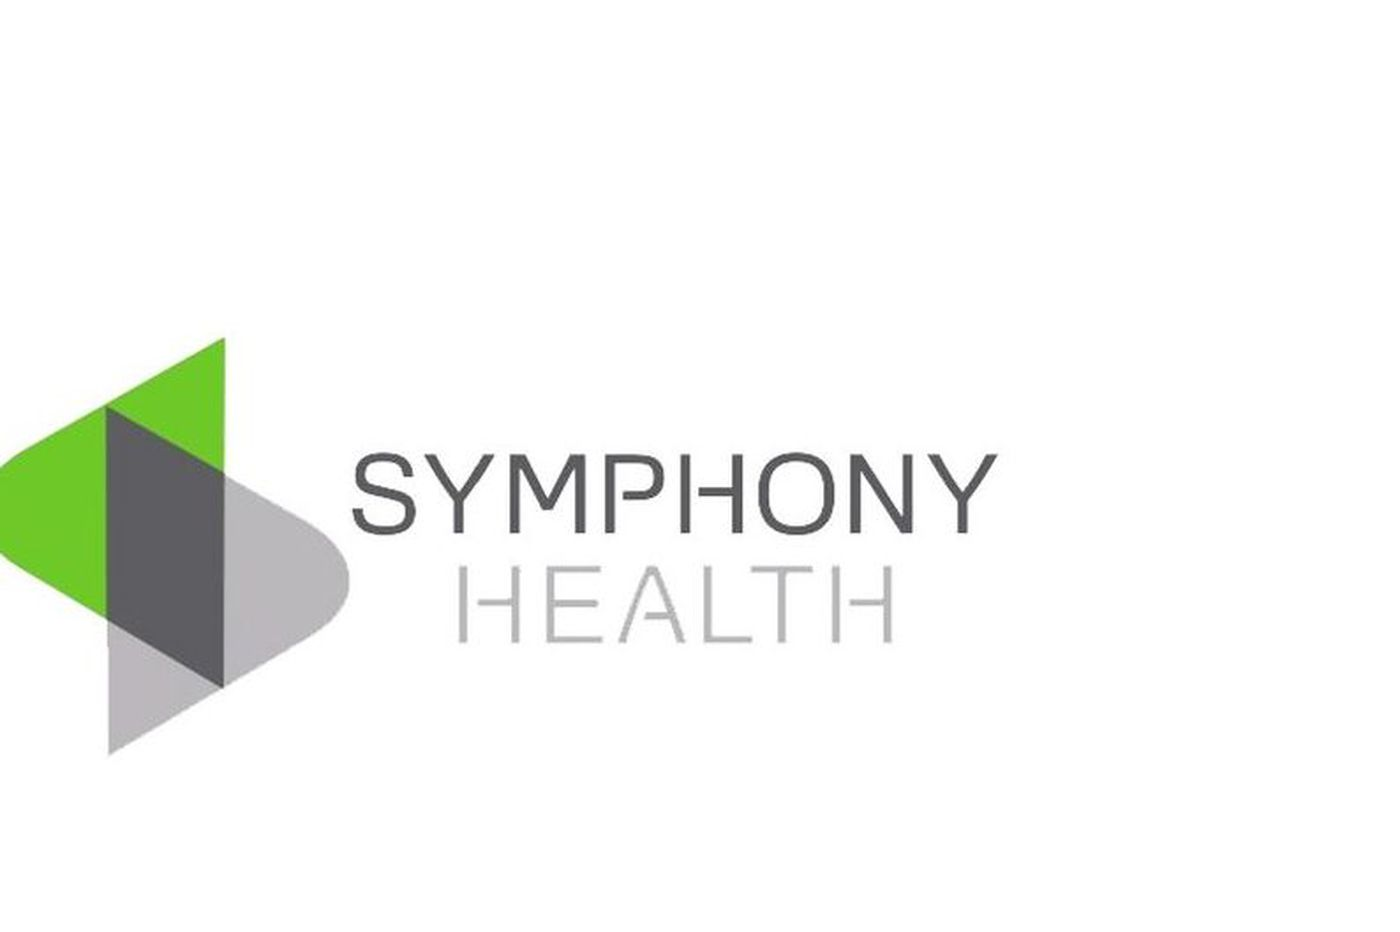 Conshy's Symphony Health drug-data firm sold for $520M